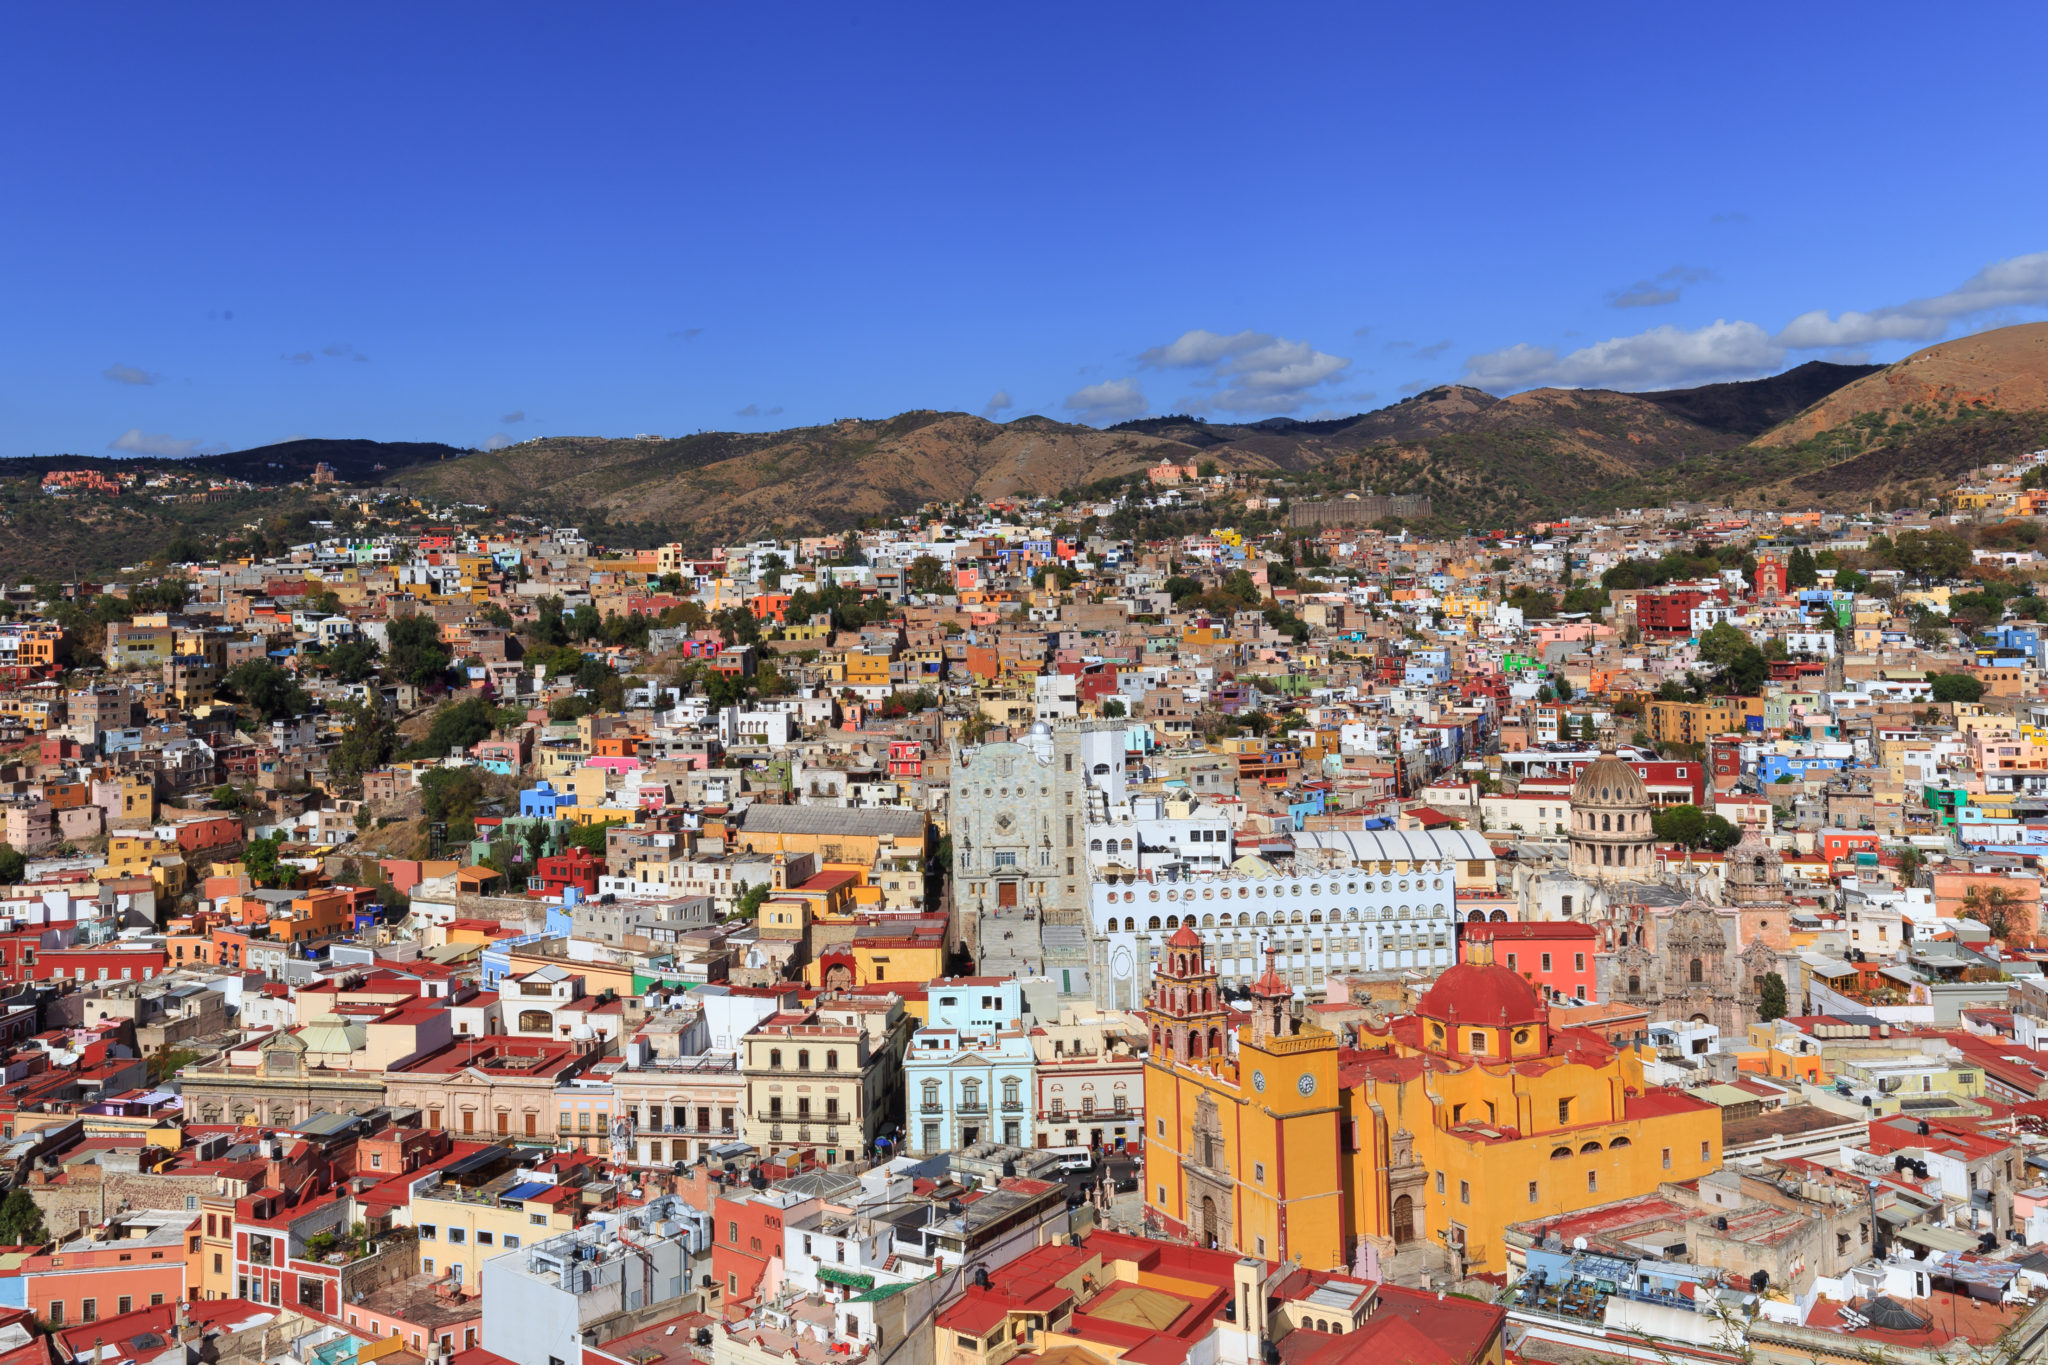 Photo of the city of Guanajuato in Mexico. Multi colored buildings and houses with the mountain behind.